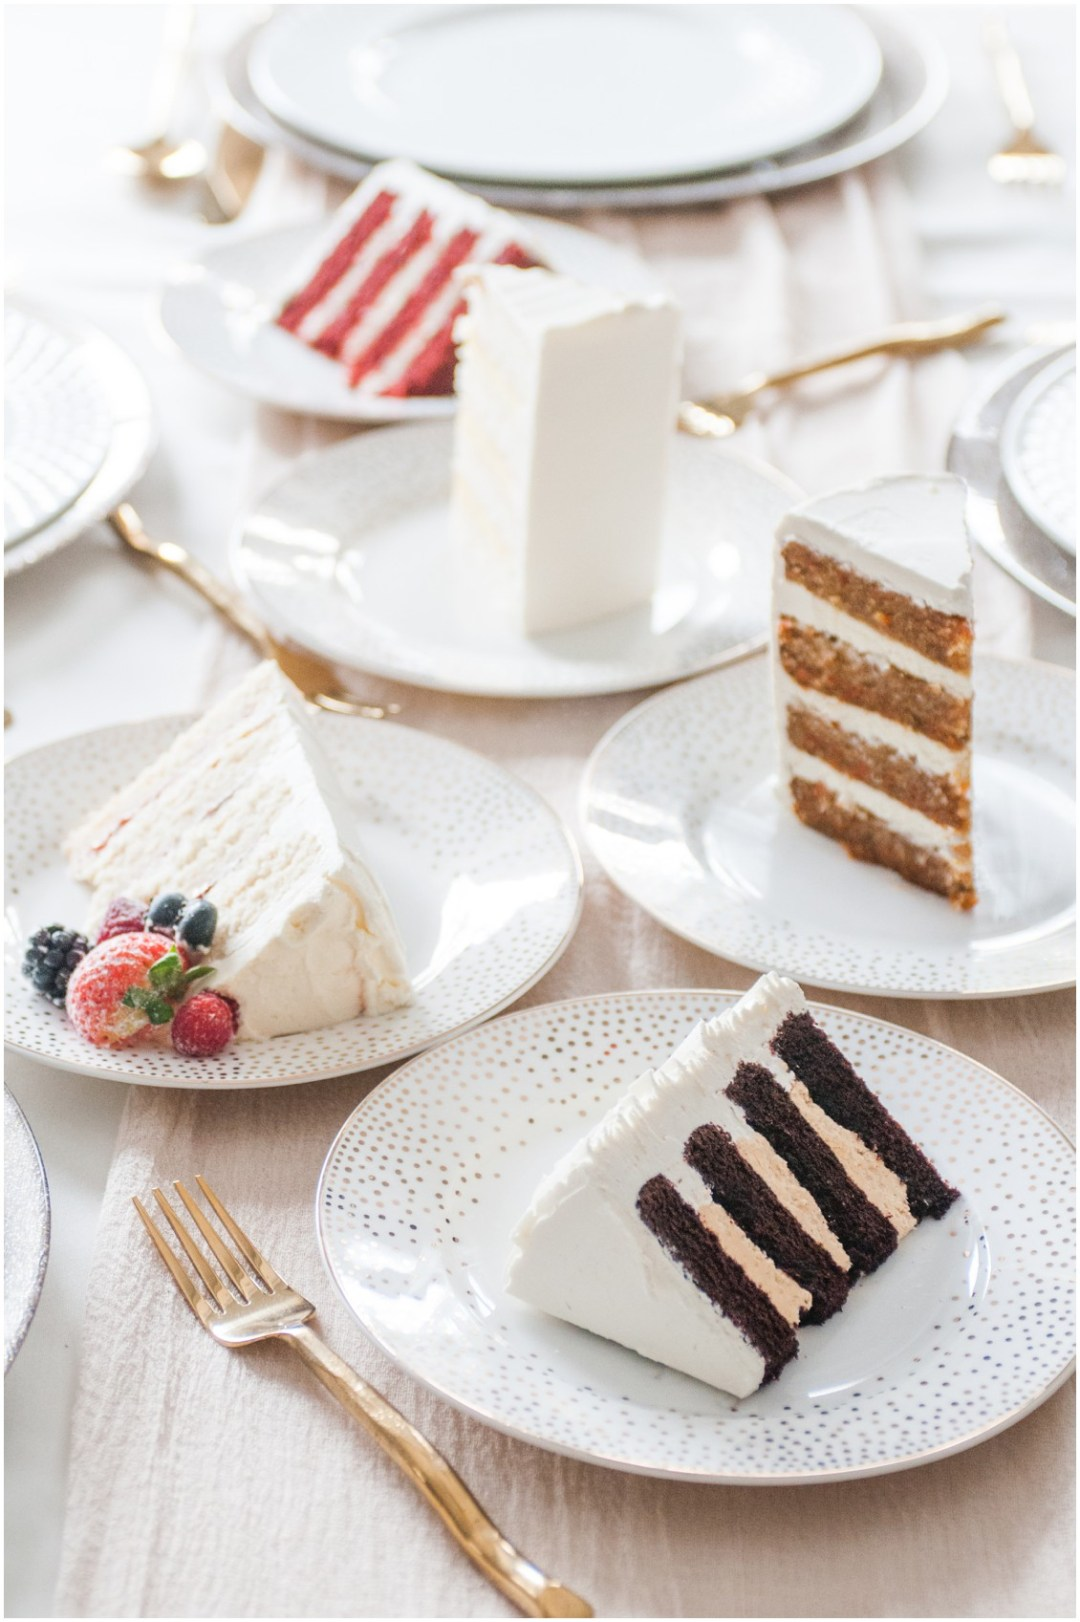 Table scape featuring Steve Konopelski Wedding Cakes   | 5 Things to Consider When Choosing Your Wedding Cake Designer | Bridal Feature Image | My Eastern Shore Wedding | Chef Steve Konopelski